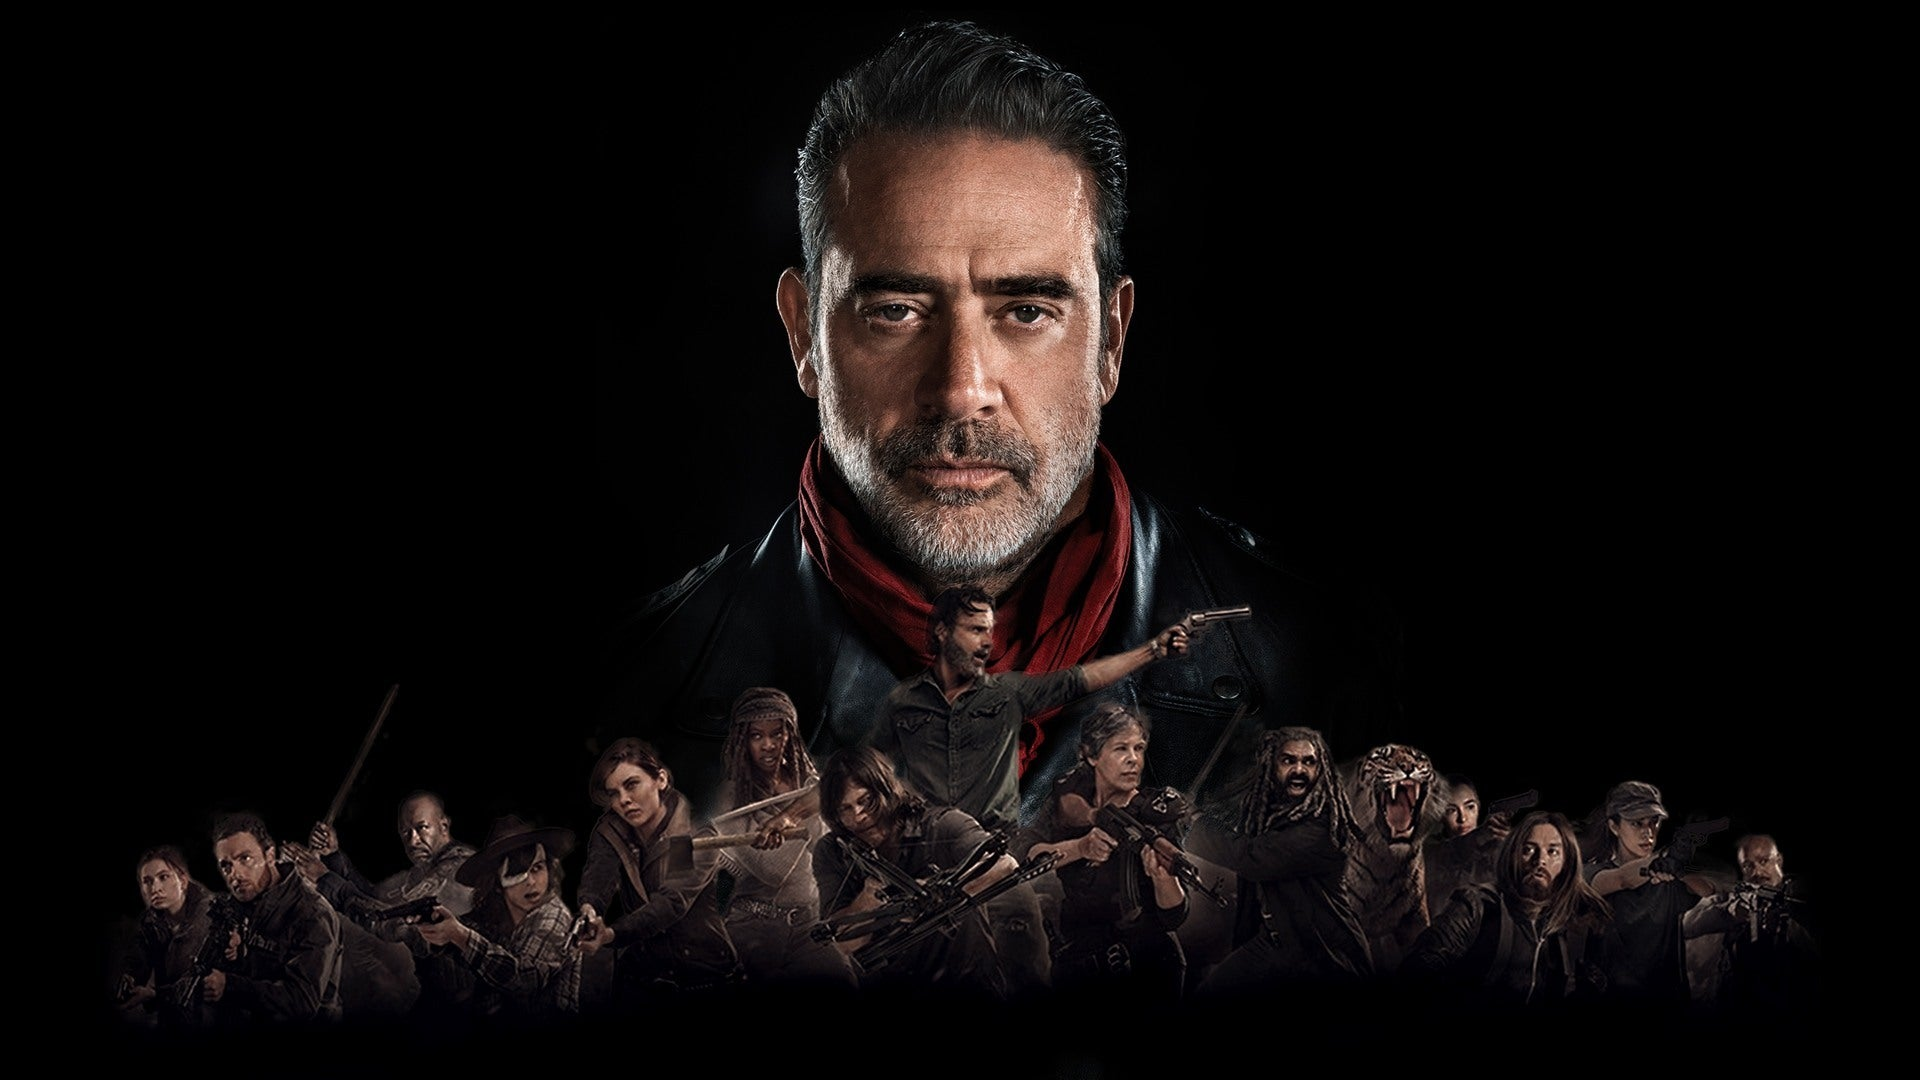 Fallout 4 Wallpaper Hd Why Negan Will Probably Die In All Out War Walking Dead